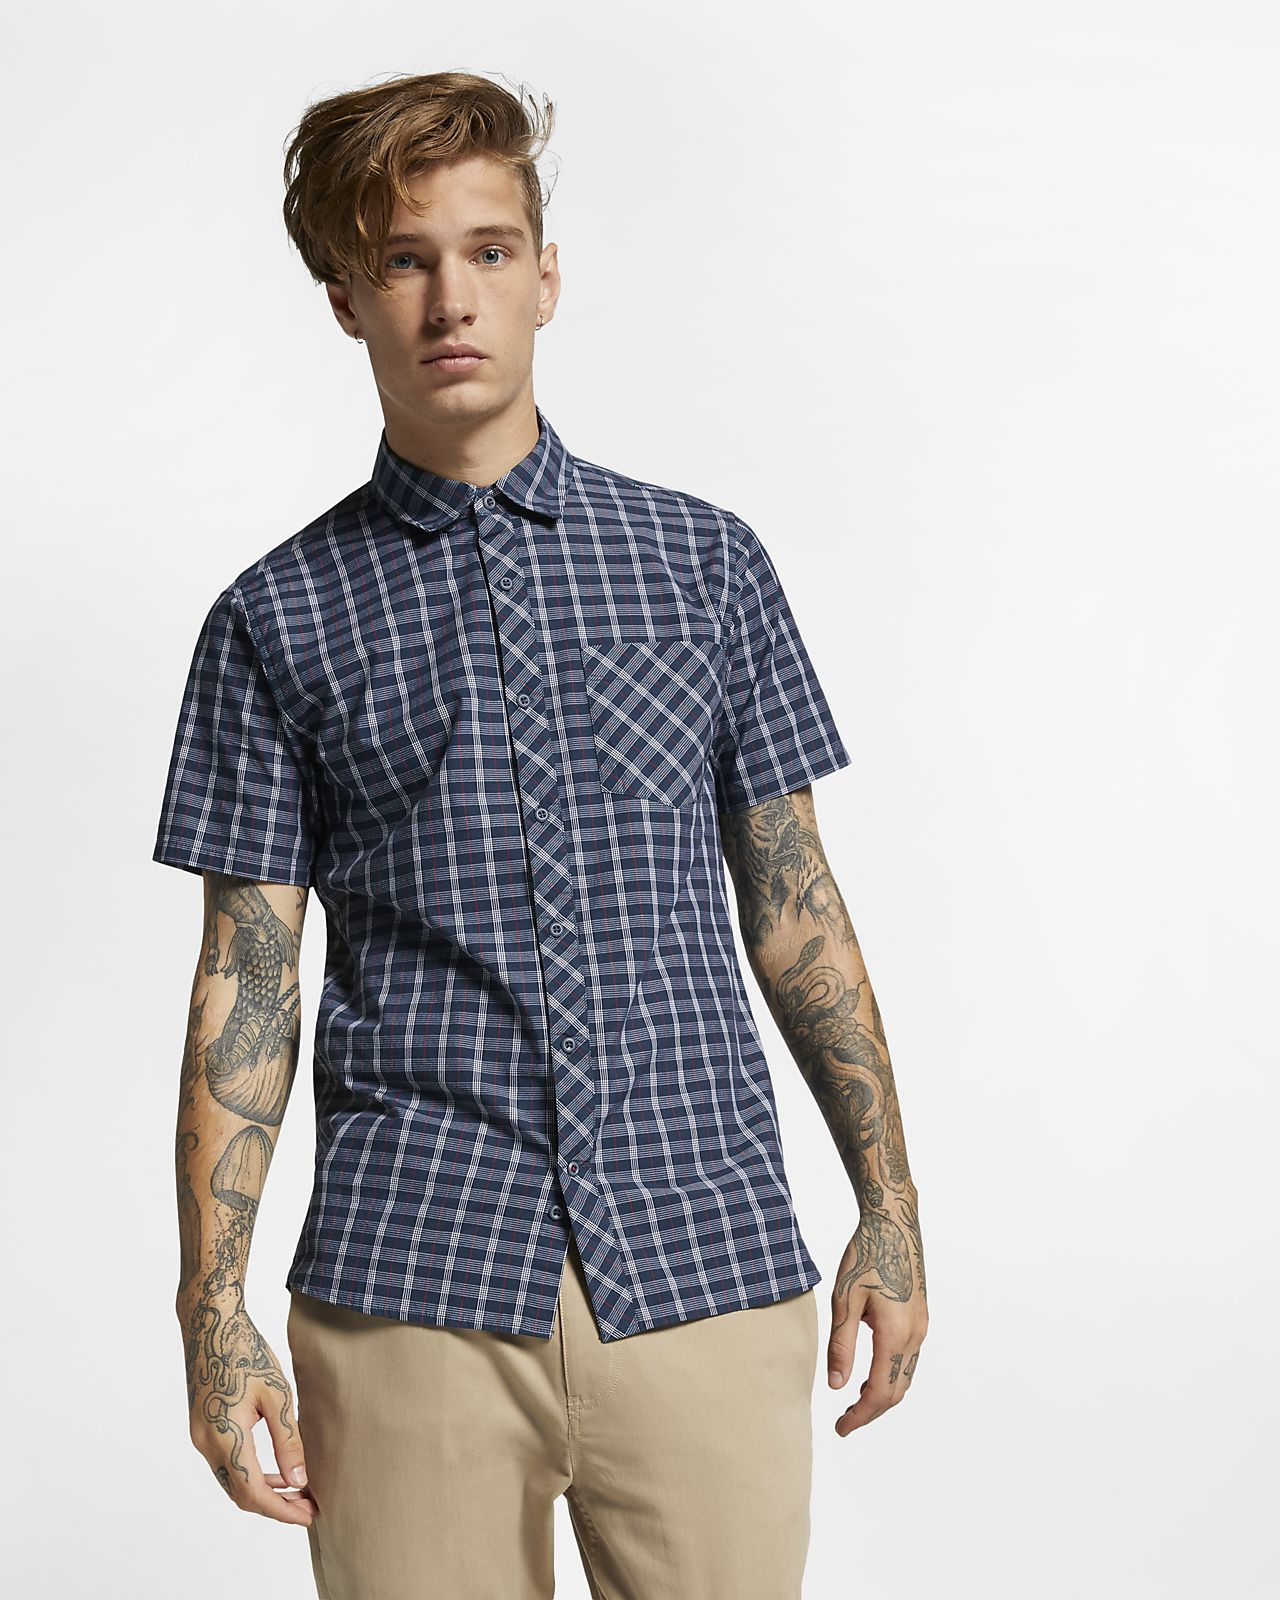 Hurley Williams Men's Short-Sleeve Shirt